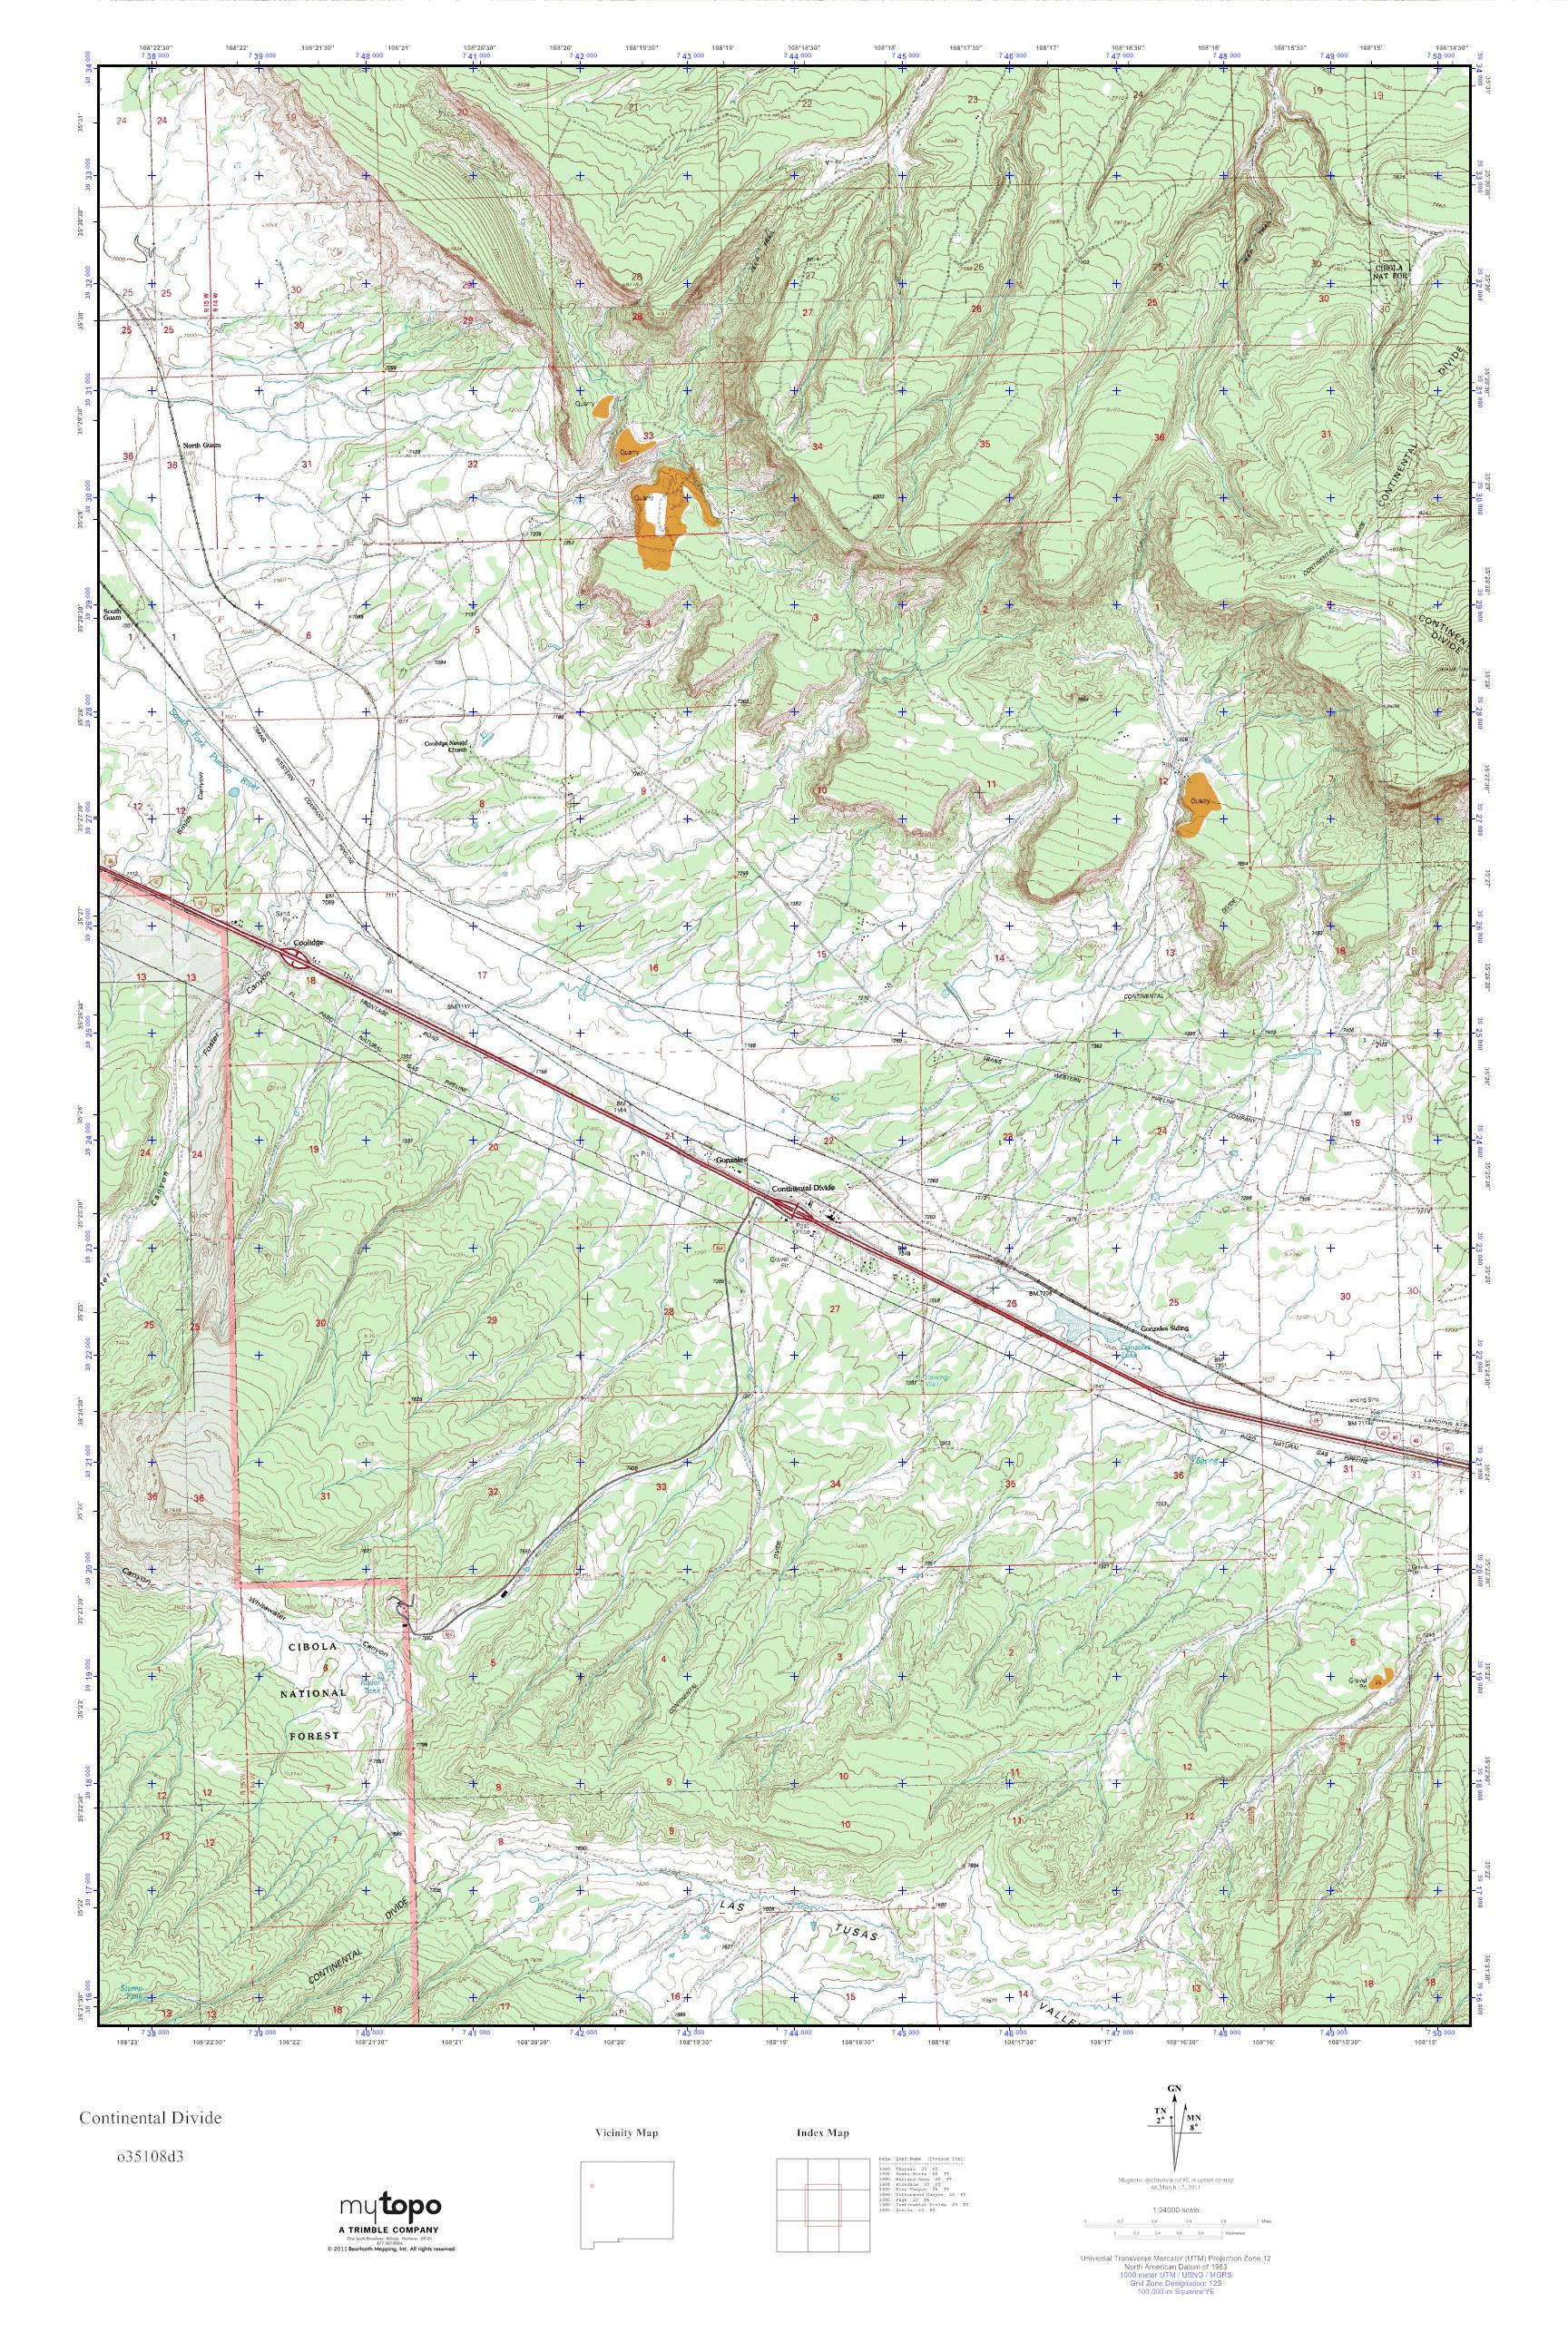 Continental Divide On Us Map.Mytopo Continental Divide New Mexico Usgs Quad Topo Map